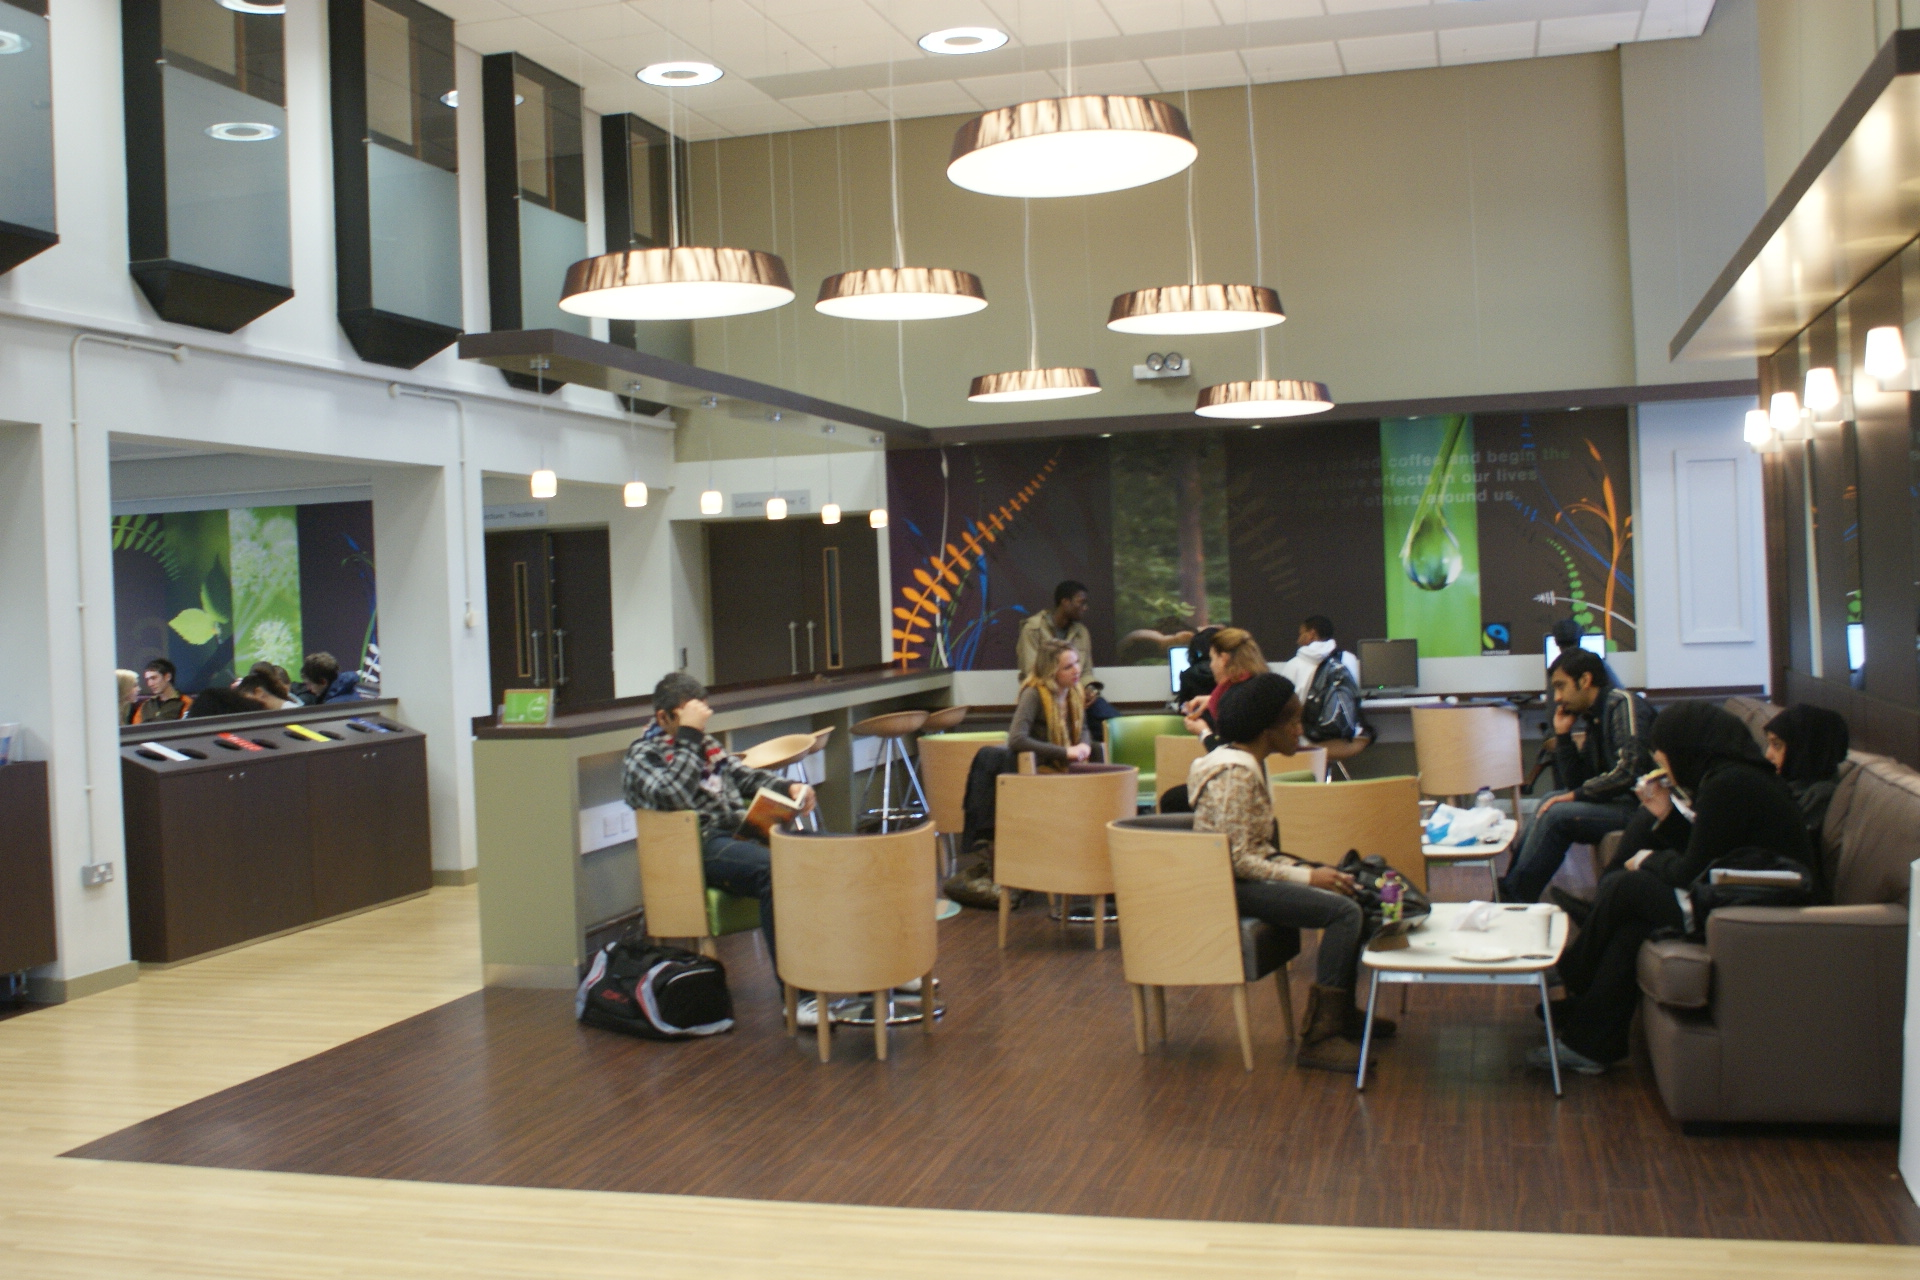 View of the café now in use by the University students and staff.